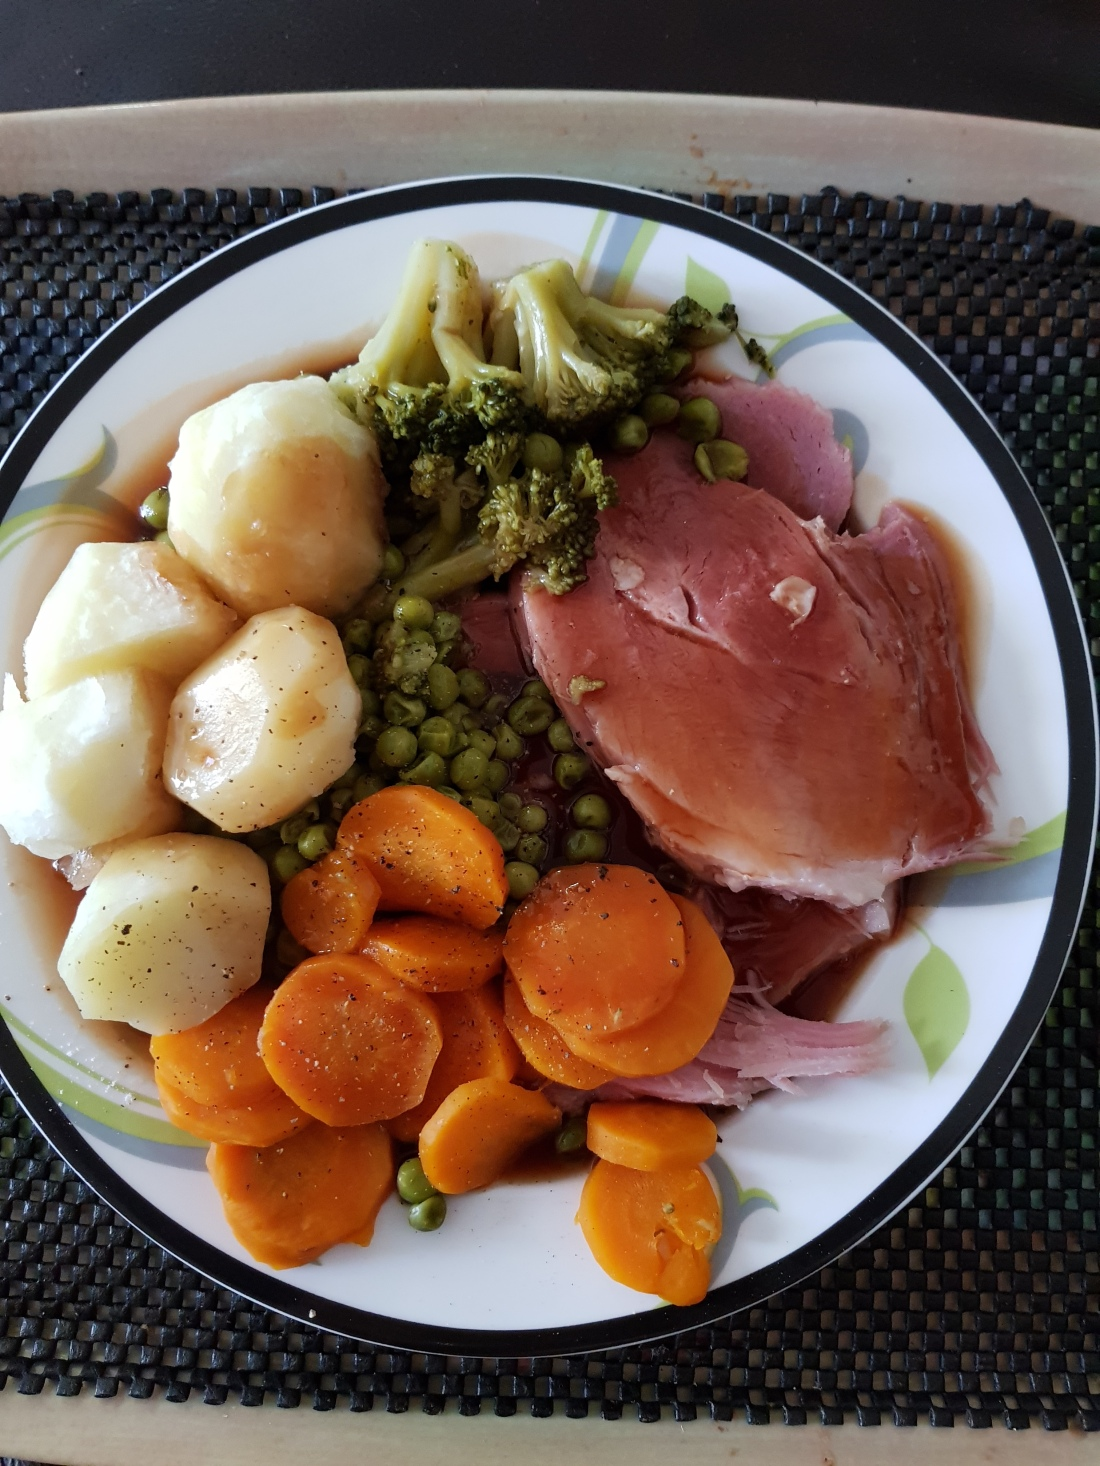 Main meal of slow cooked gammon, potatoes and vegetables